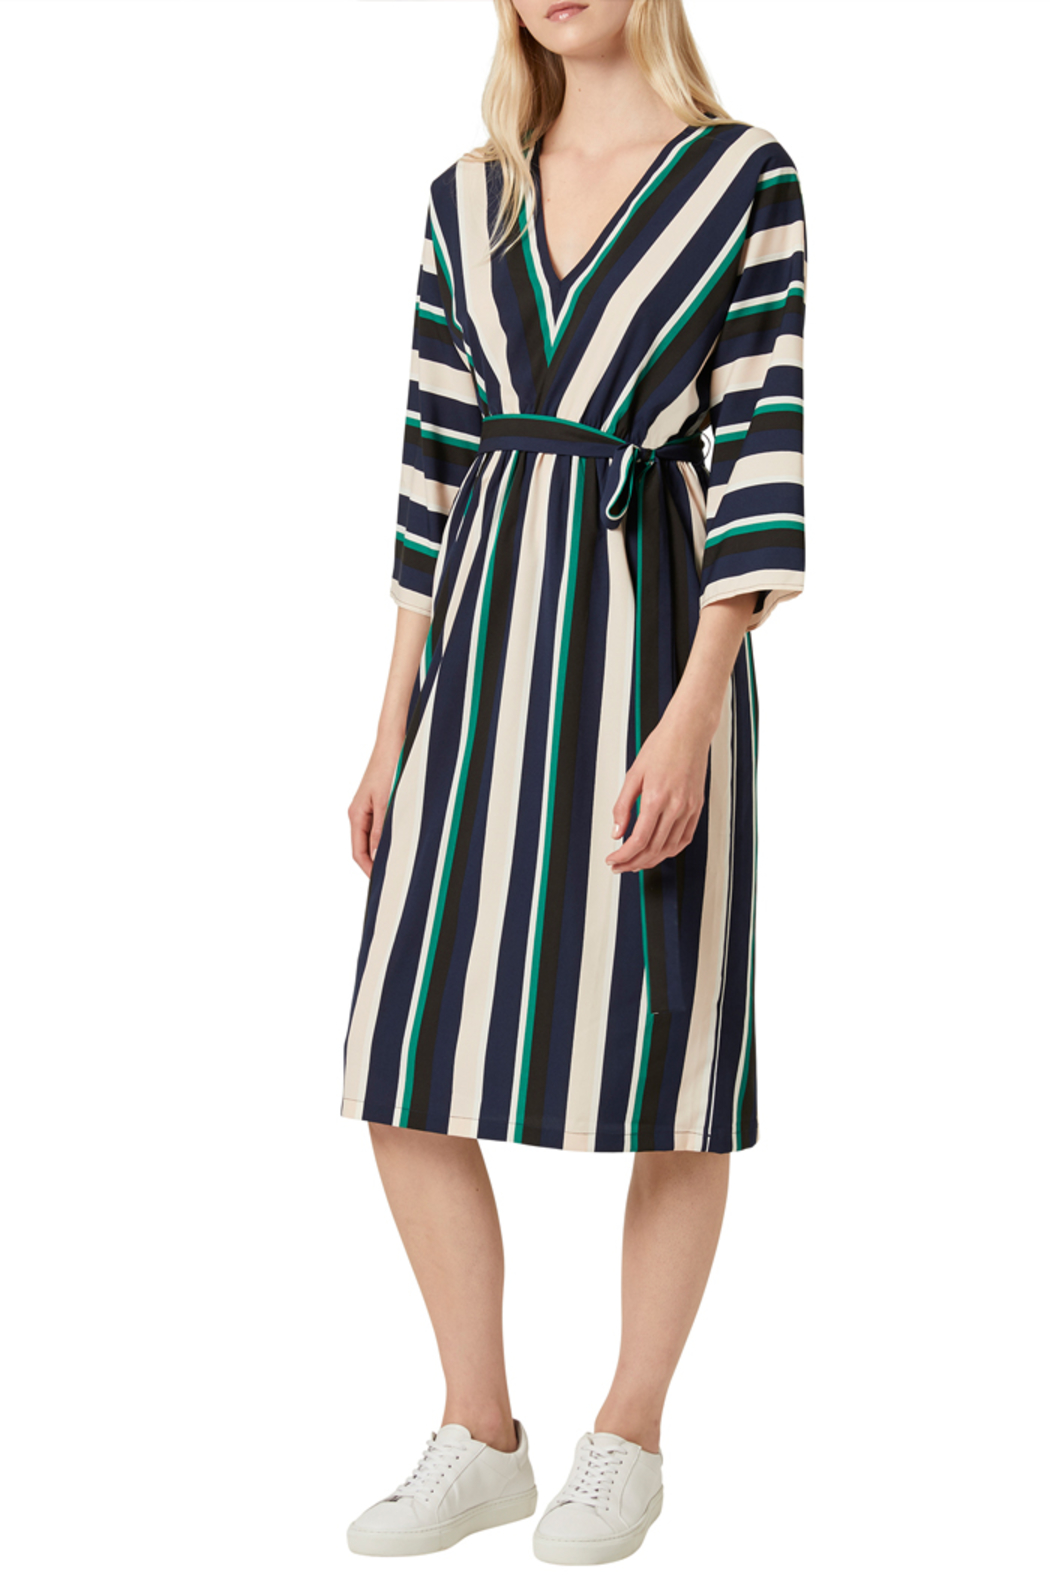 French Connection MULTI STRIPE BELTED DRESS - Main Image